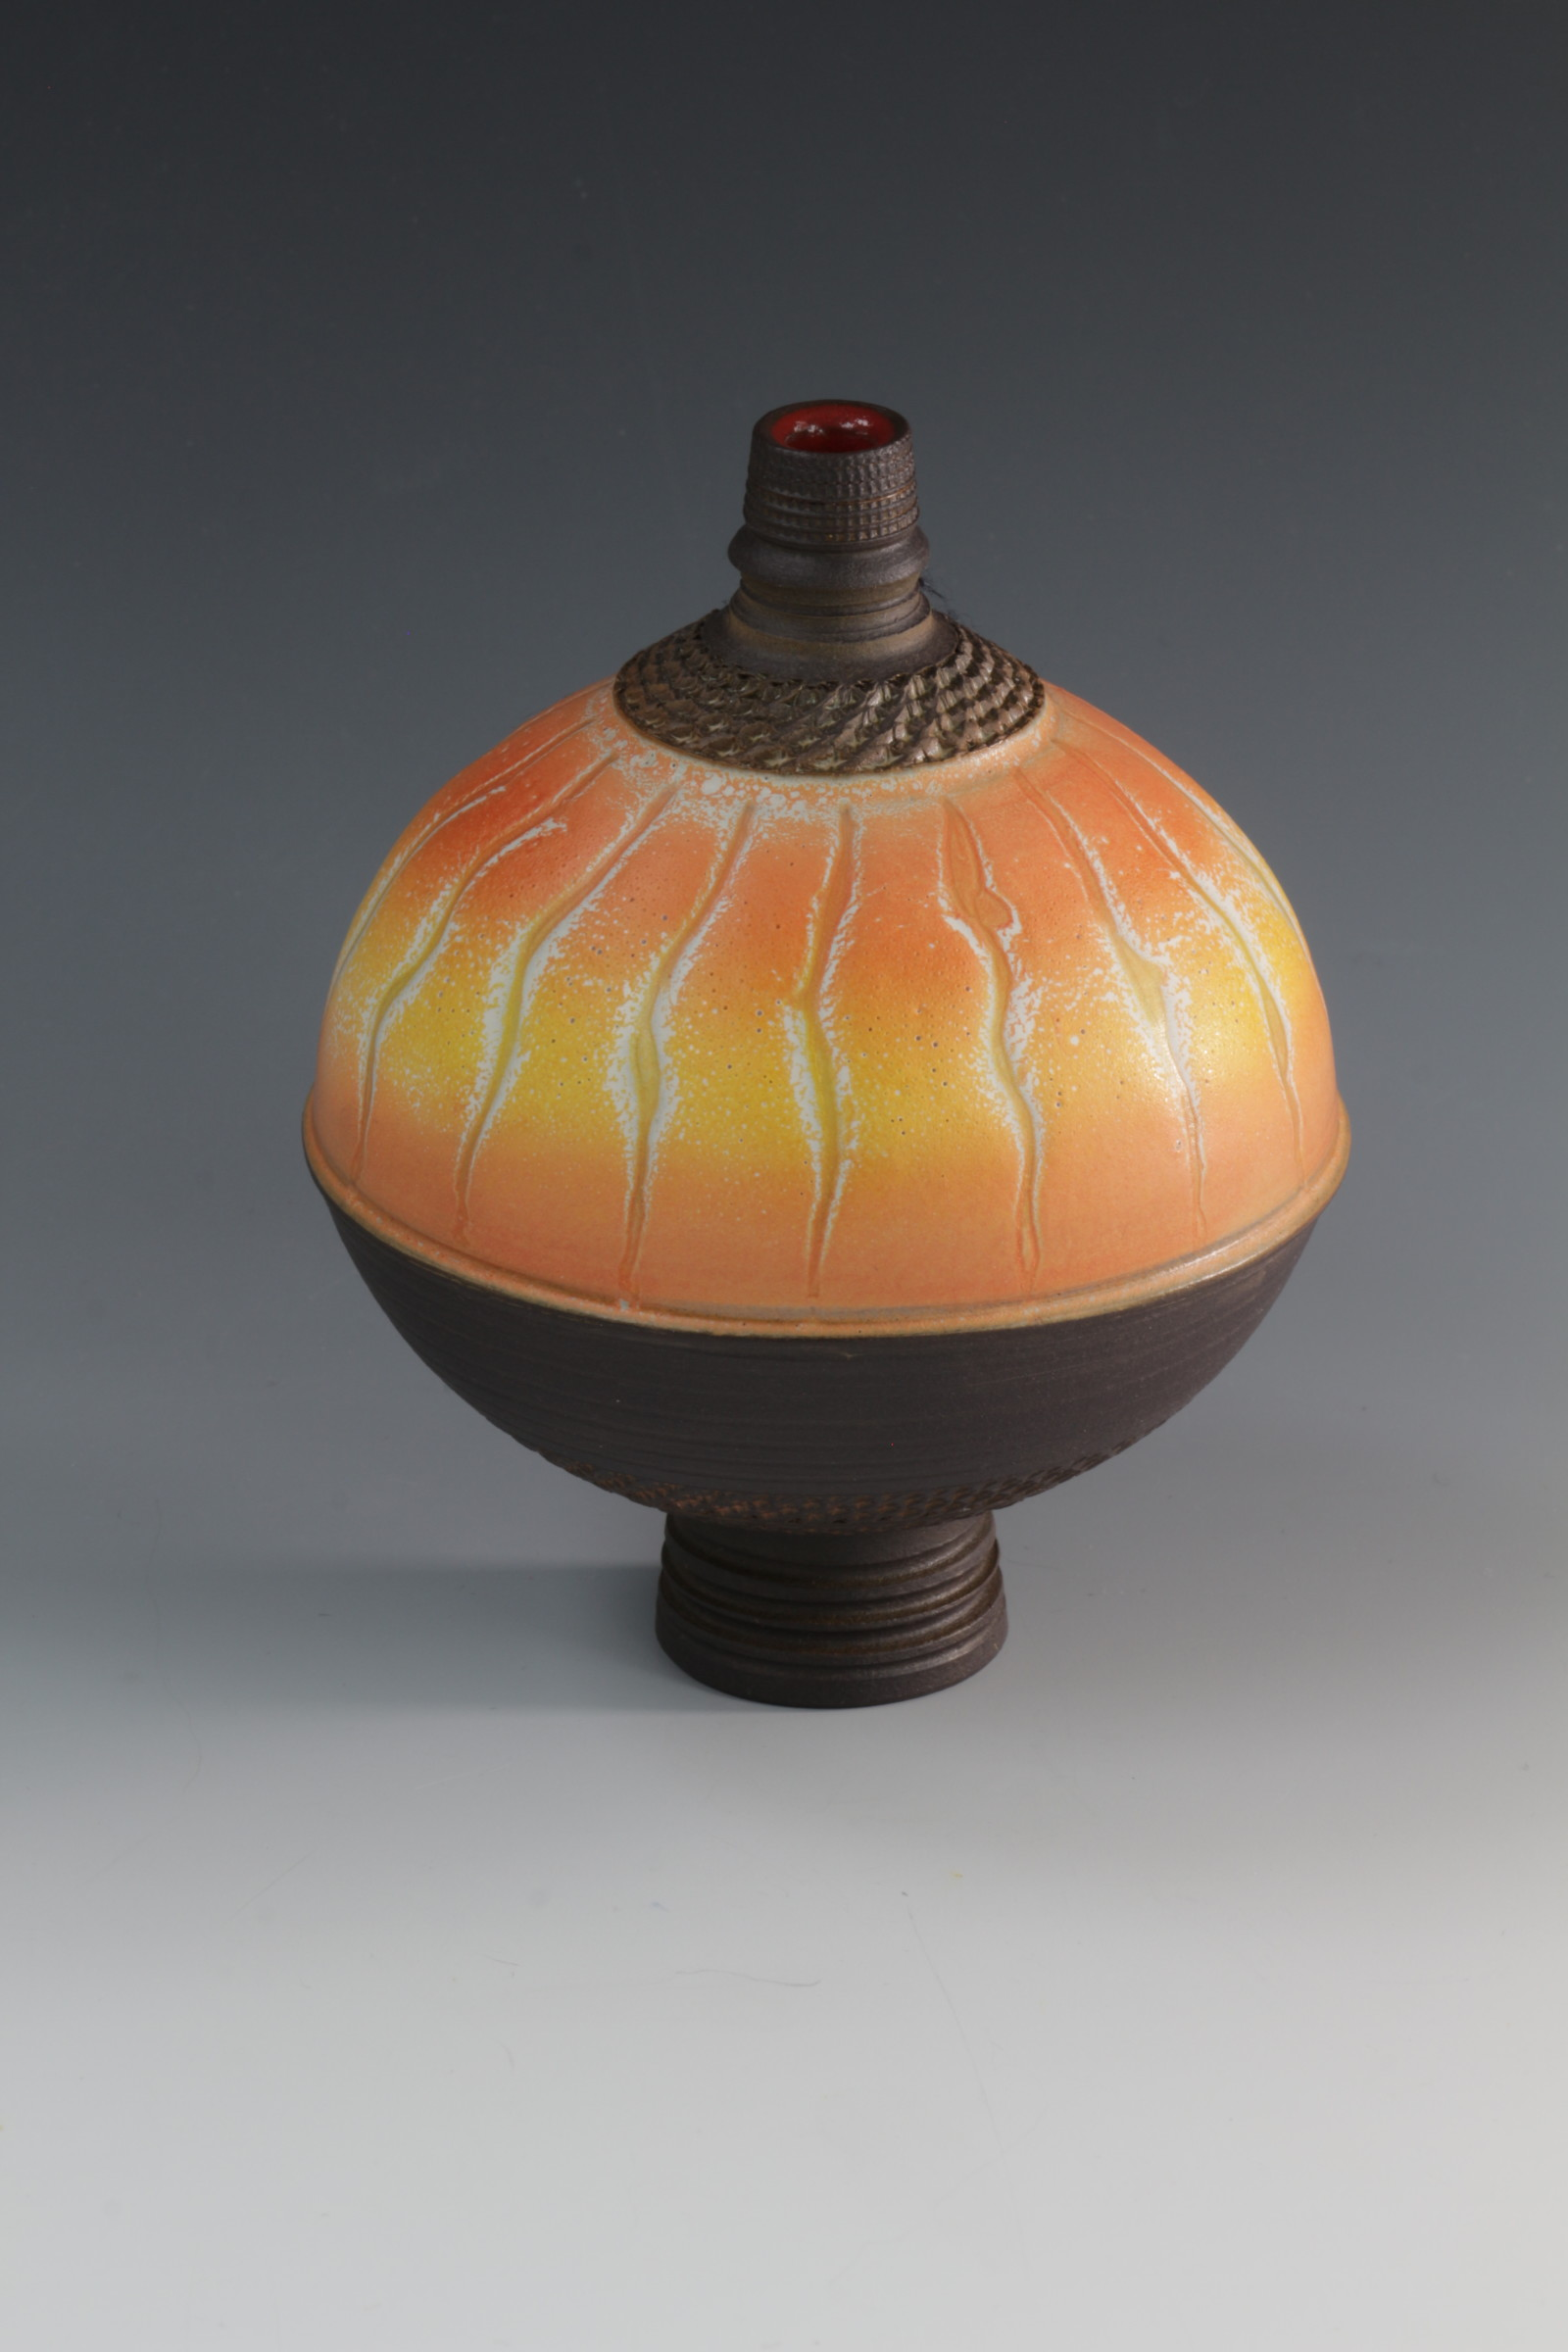 "<span class=""link fancybox-details-link""><a href=""/artists/61-geoffrey-swindell/works/6900-geoffrey-swindell-bud-vase-2020/"">View Detail Page</a></span><div class=""artist""><strong>Geoffrey Swindell</strong></div> <div class=""title""><em>Bud Vase</em>, 2020</div> <div class=""medium"">Porcelain</div><div class=""copyright_line"">Own Art: £ 17 x 10 Months, 0% APR</div>"